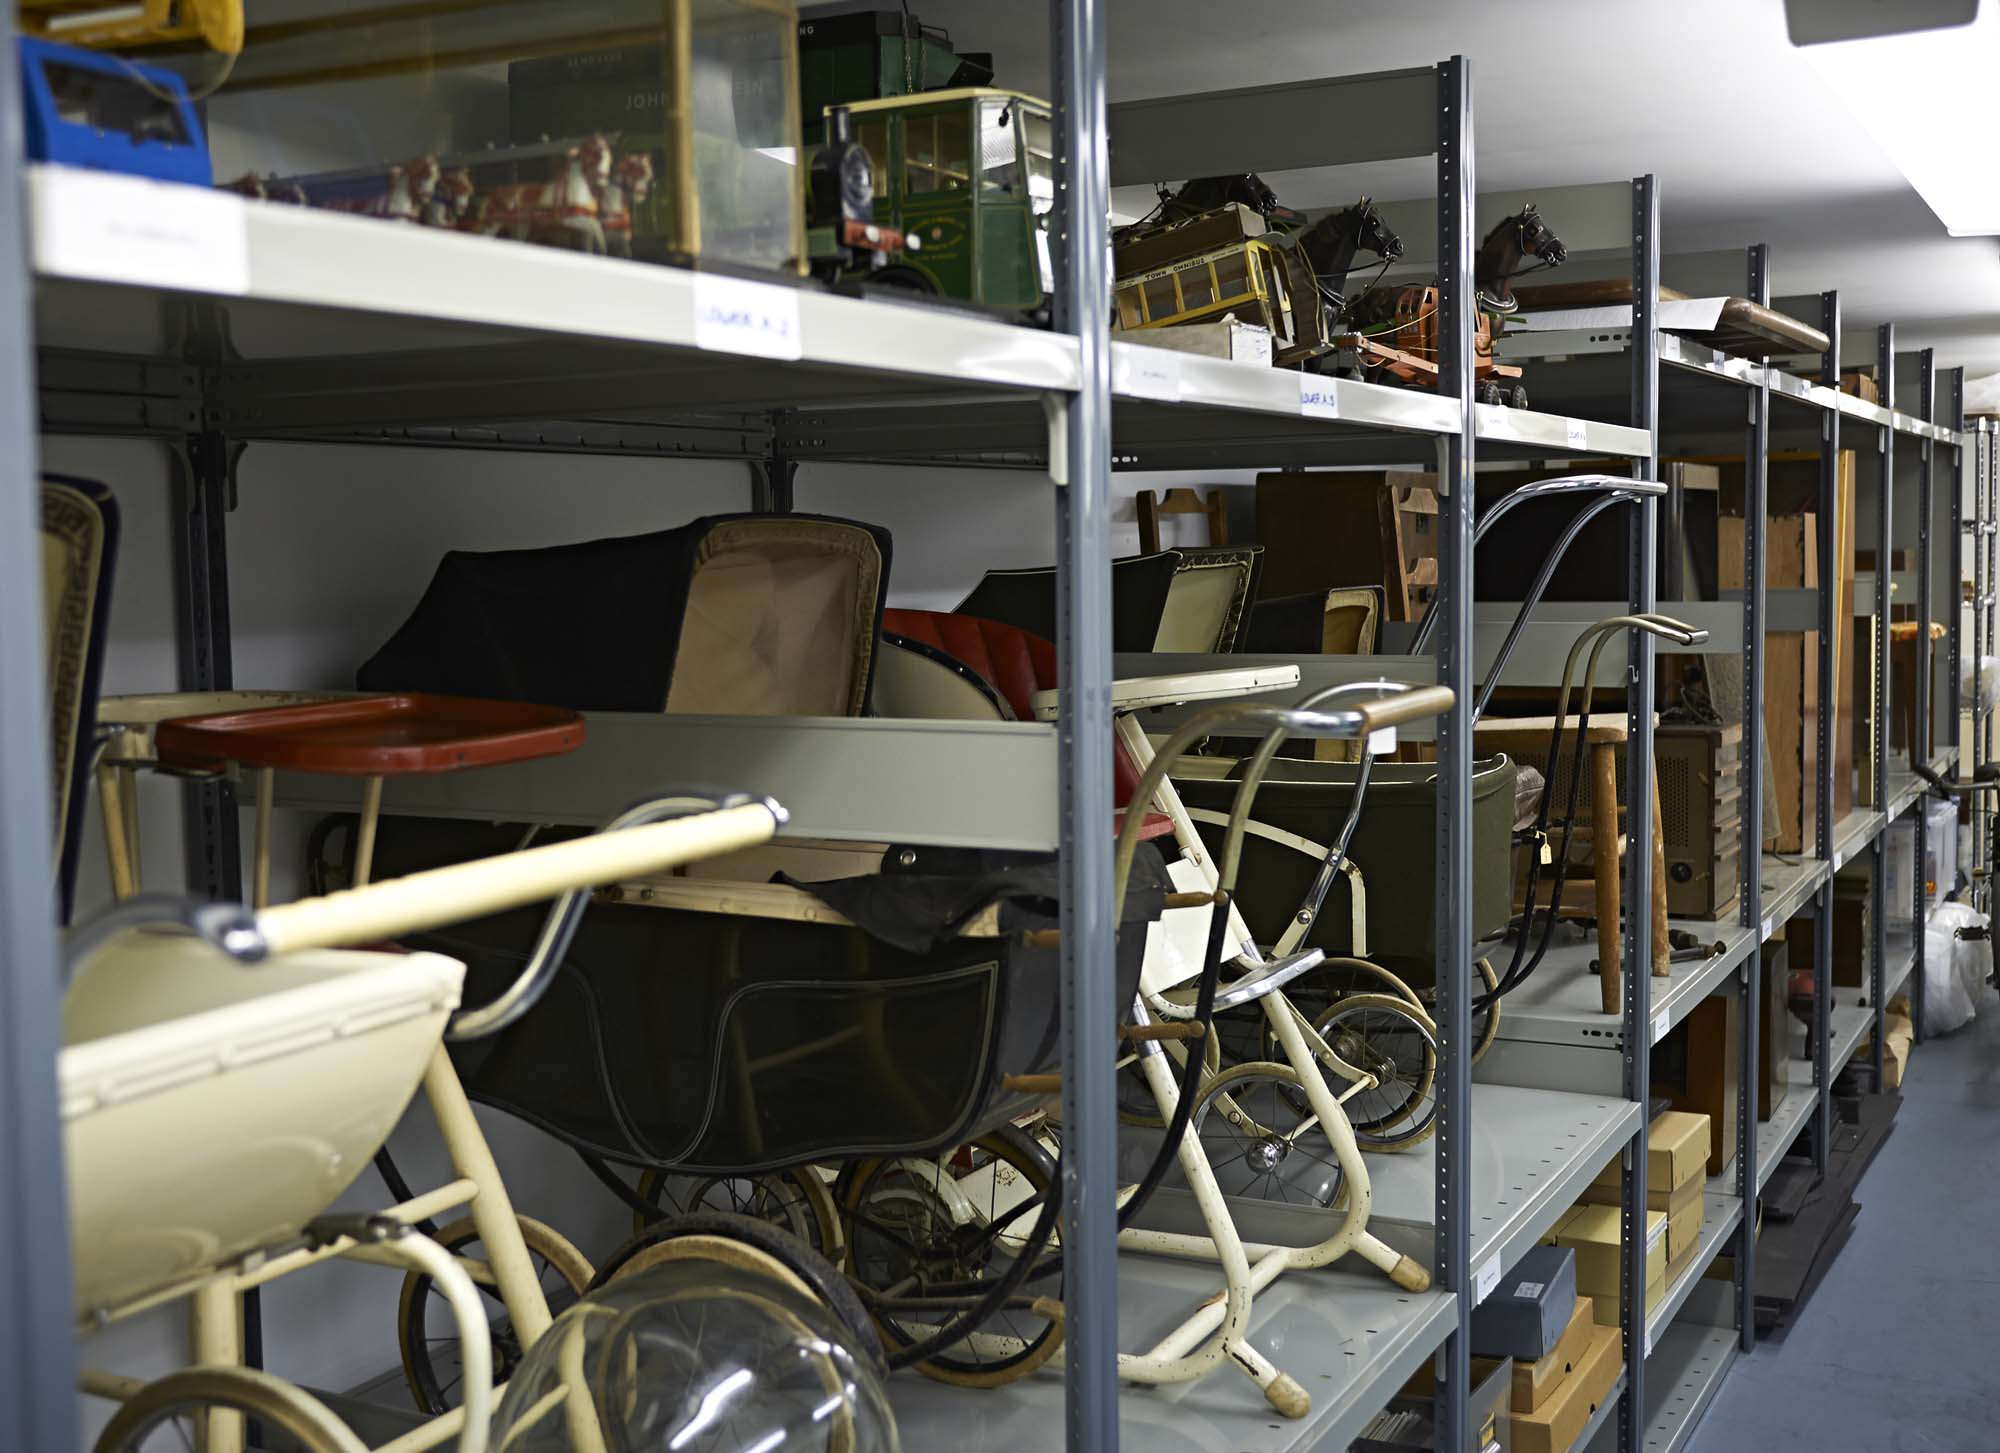 a photo of a store room with rack shelving holding a prams and other items of domestic furniture